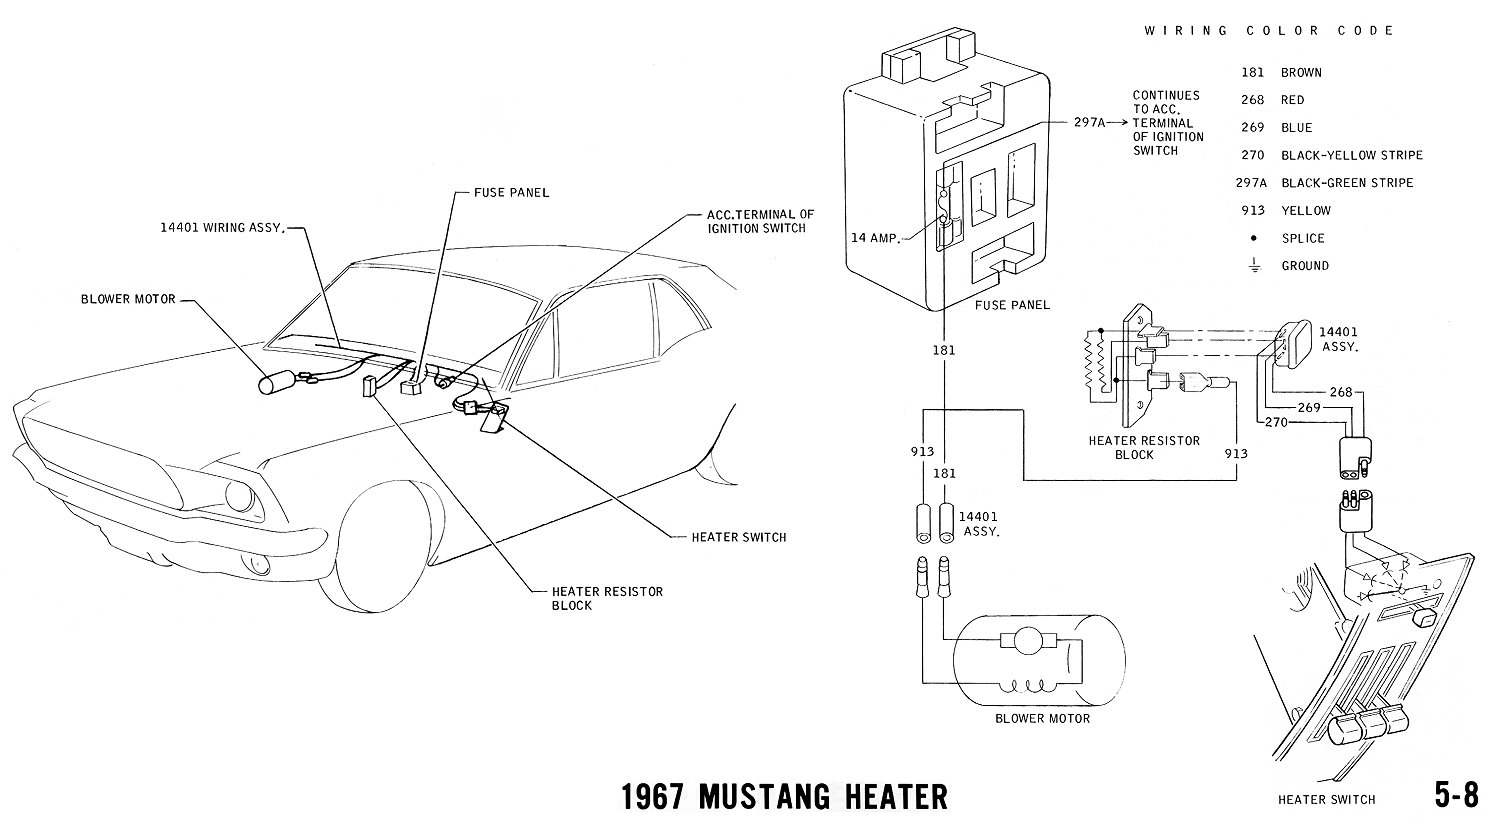 1967 Mustang Wiring And Vacuum Diagrams on jetta radio wiring harness